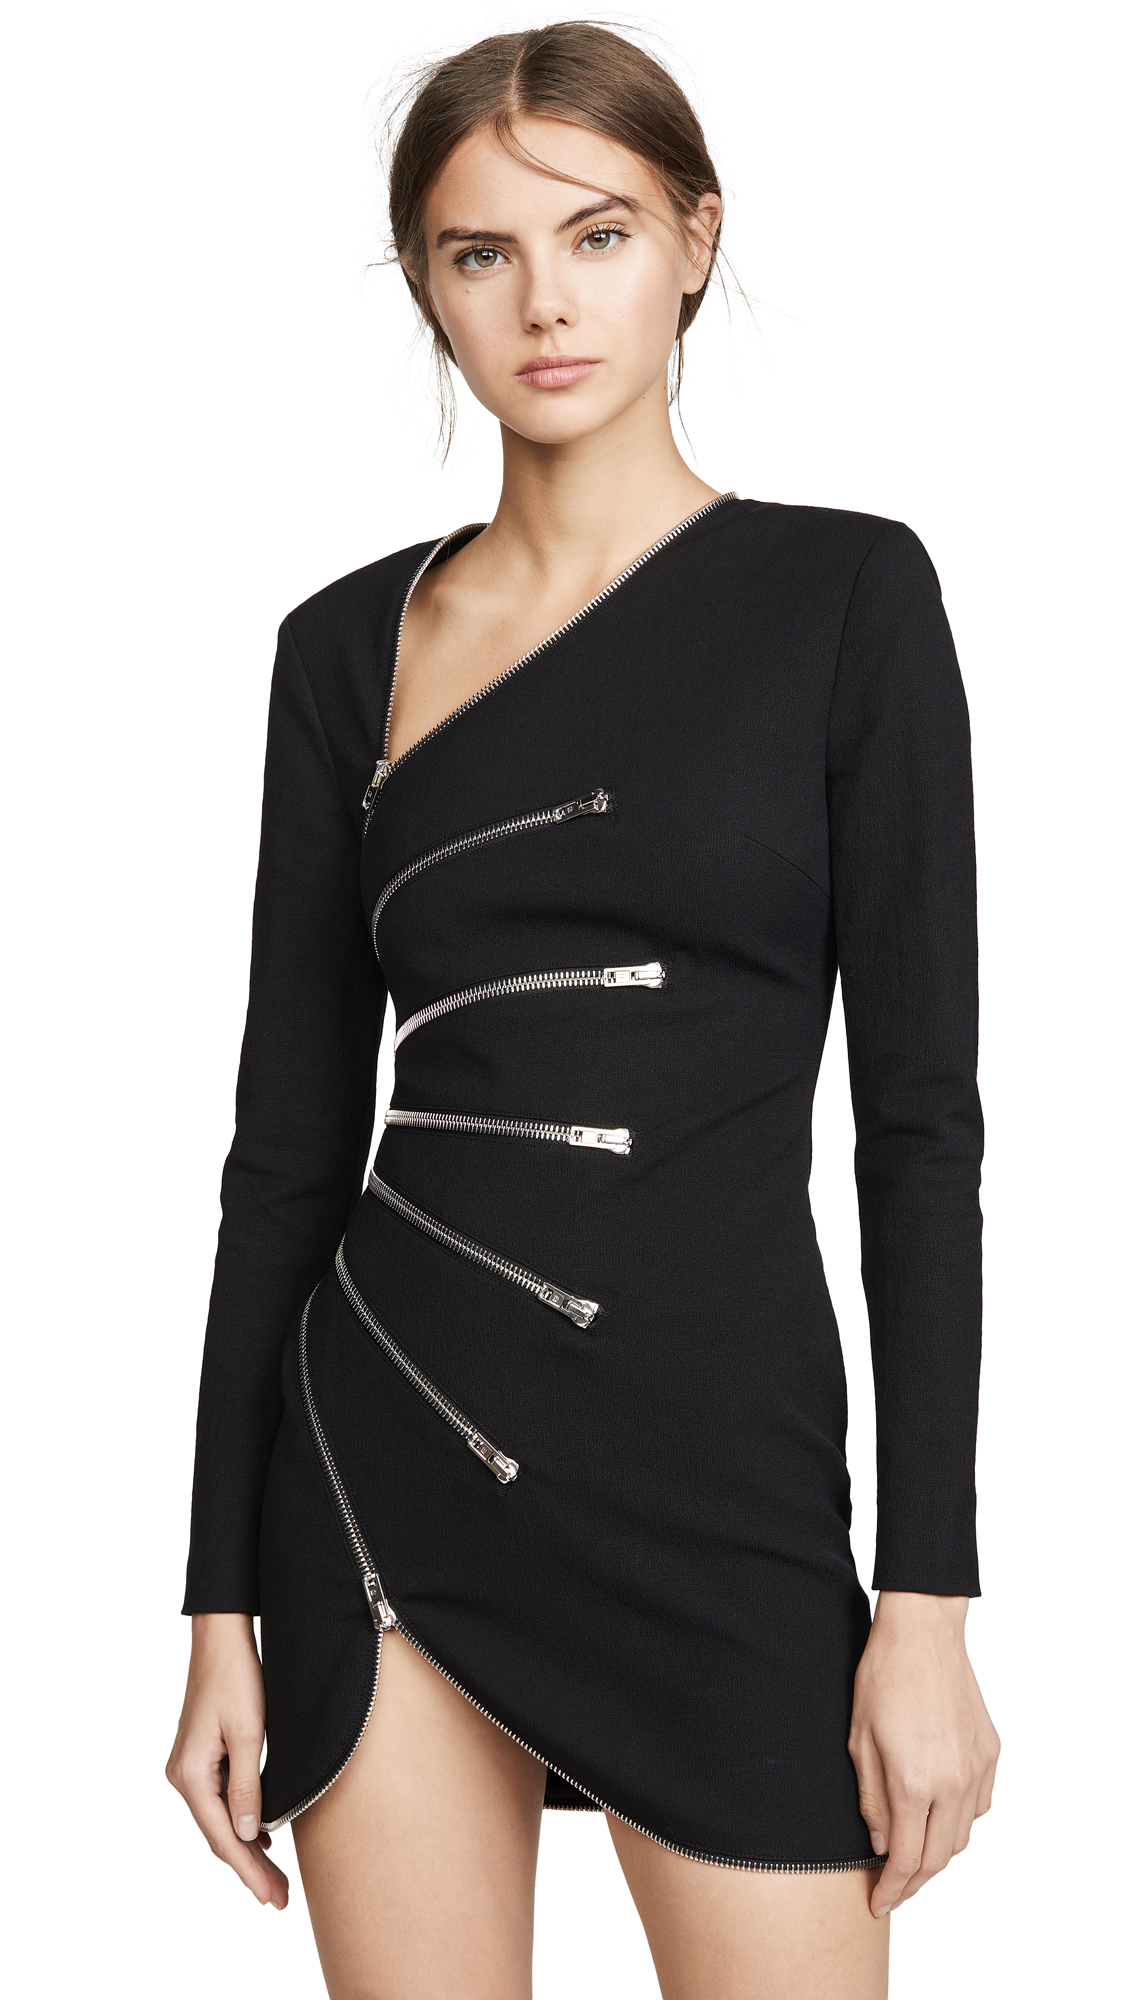 Alexander Wang Long Sleeve Sunburst Zip Dress - 30% Off Sale